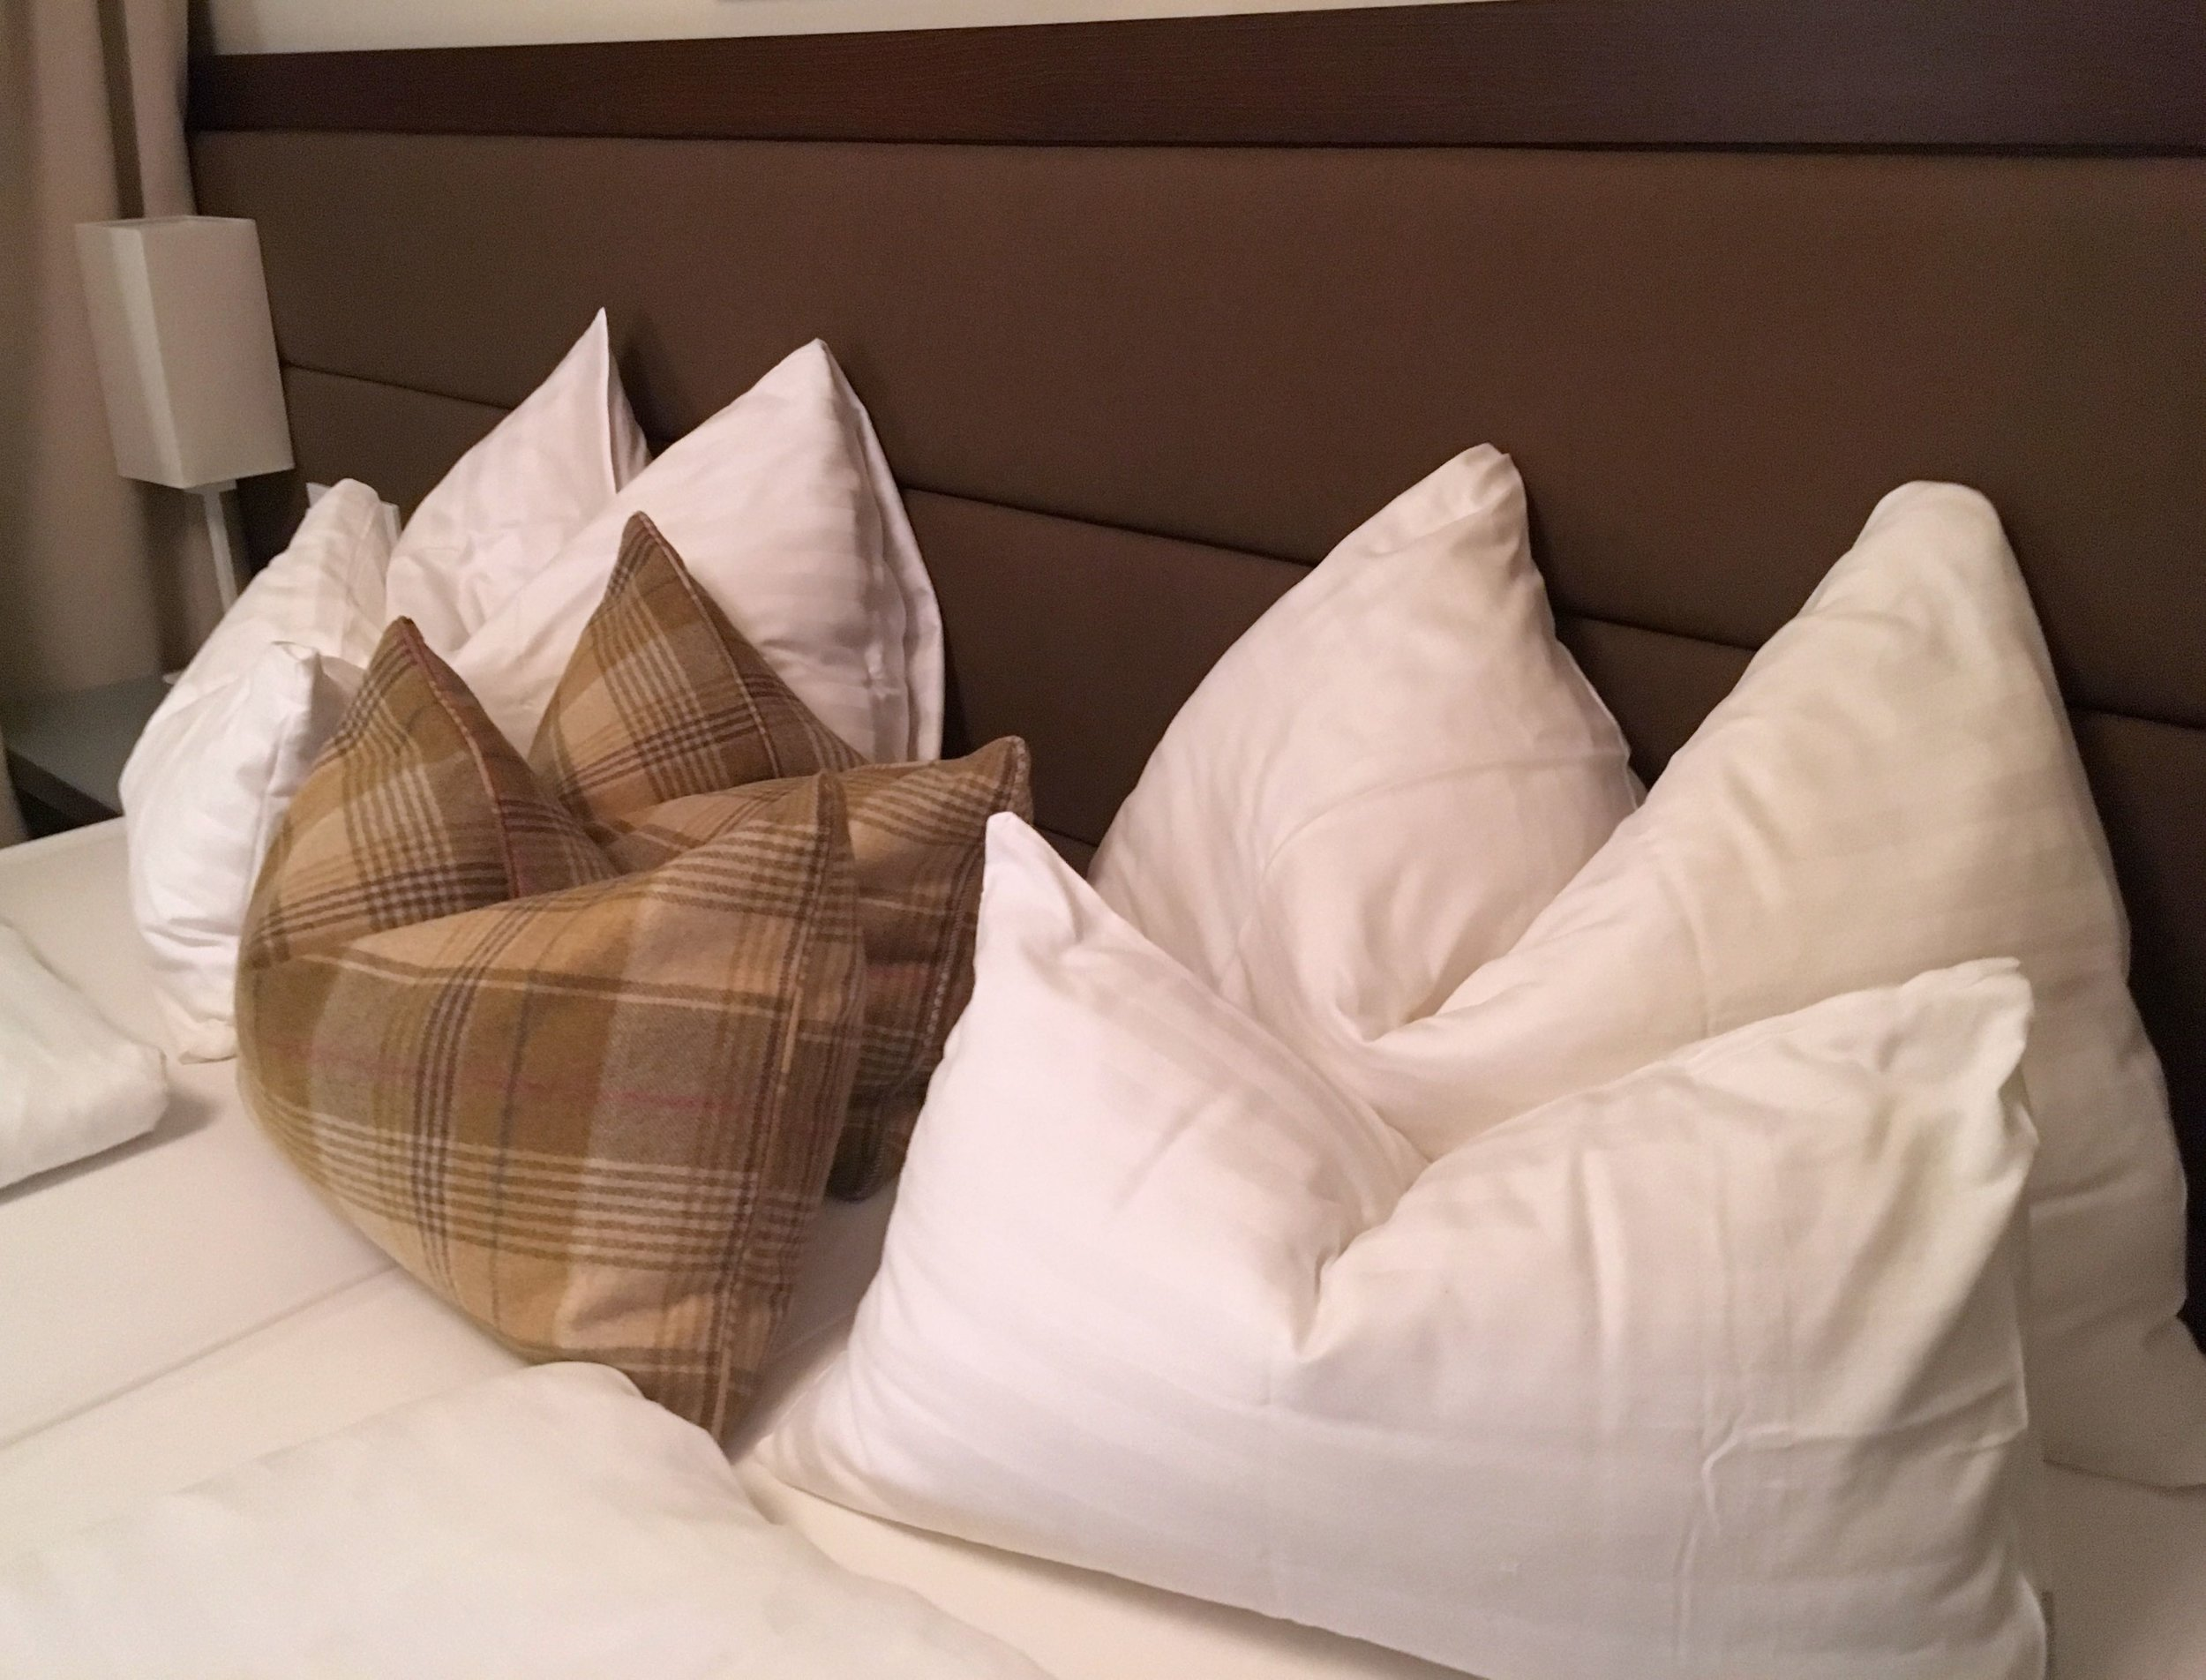 pillows tyrol style in my austrian hotel room